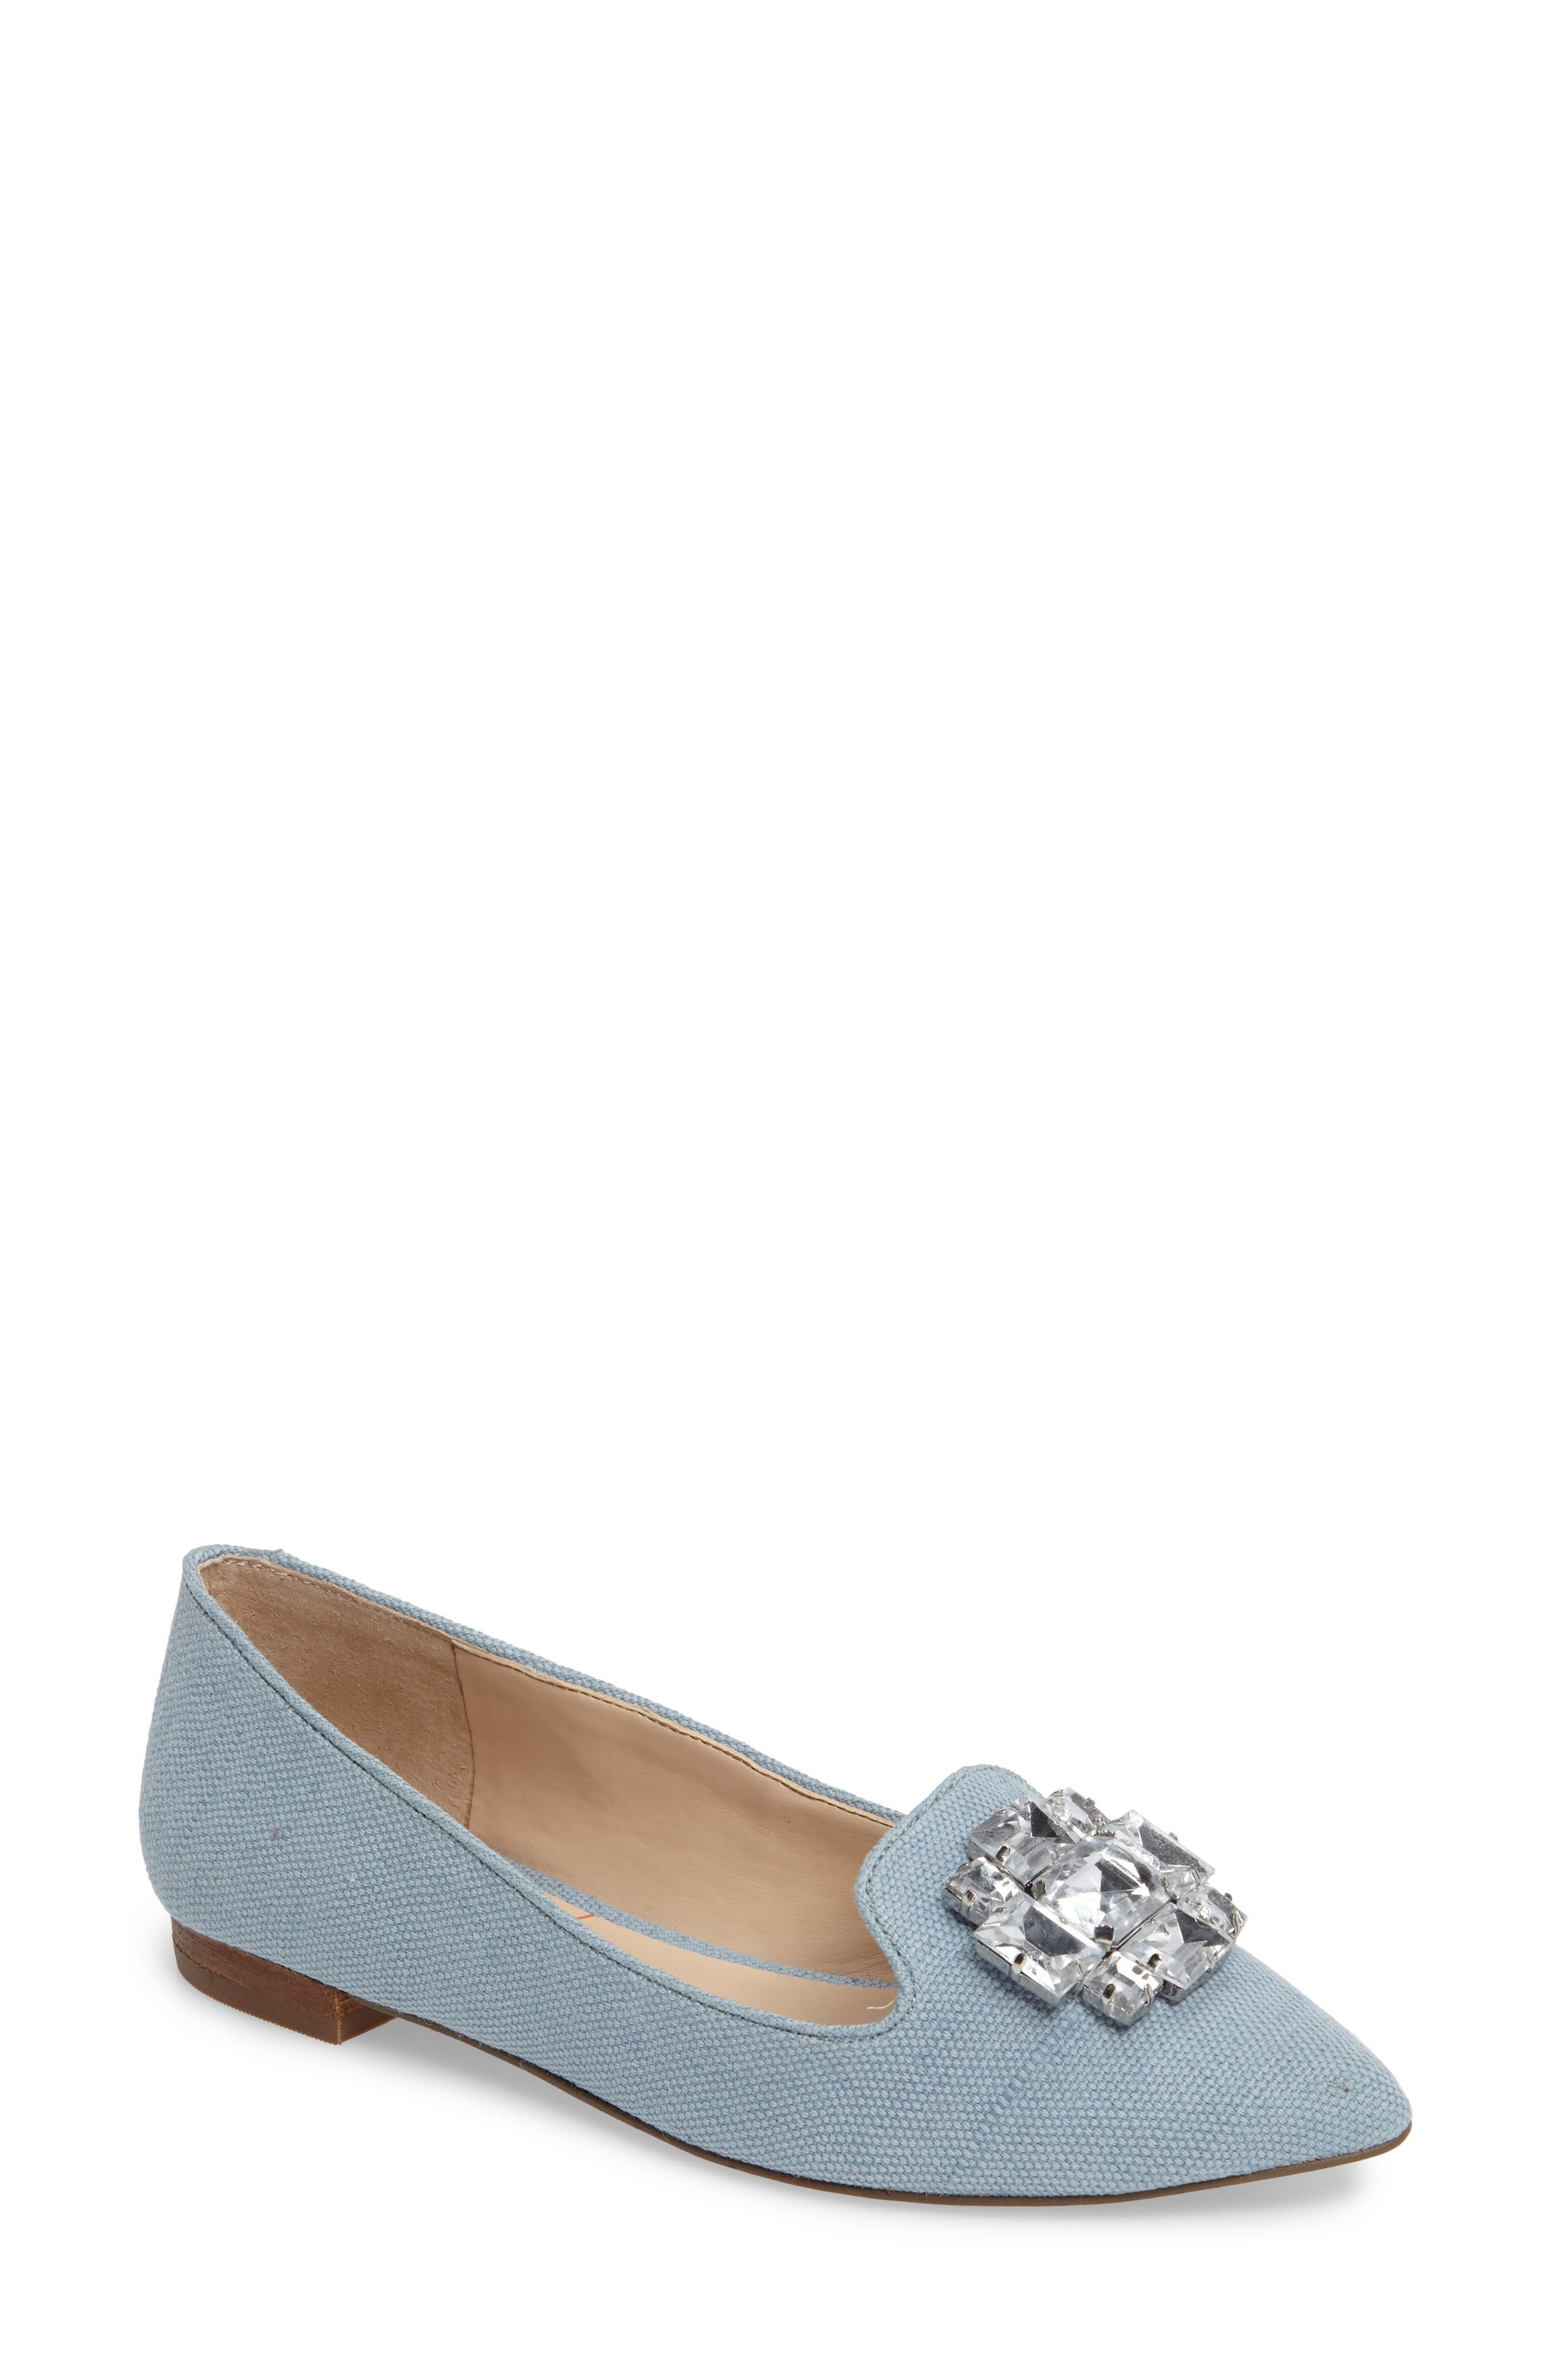 Main Image - Sole Society 'Libry' Embellished Pointy Toe Flat (Women)